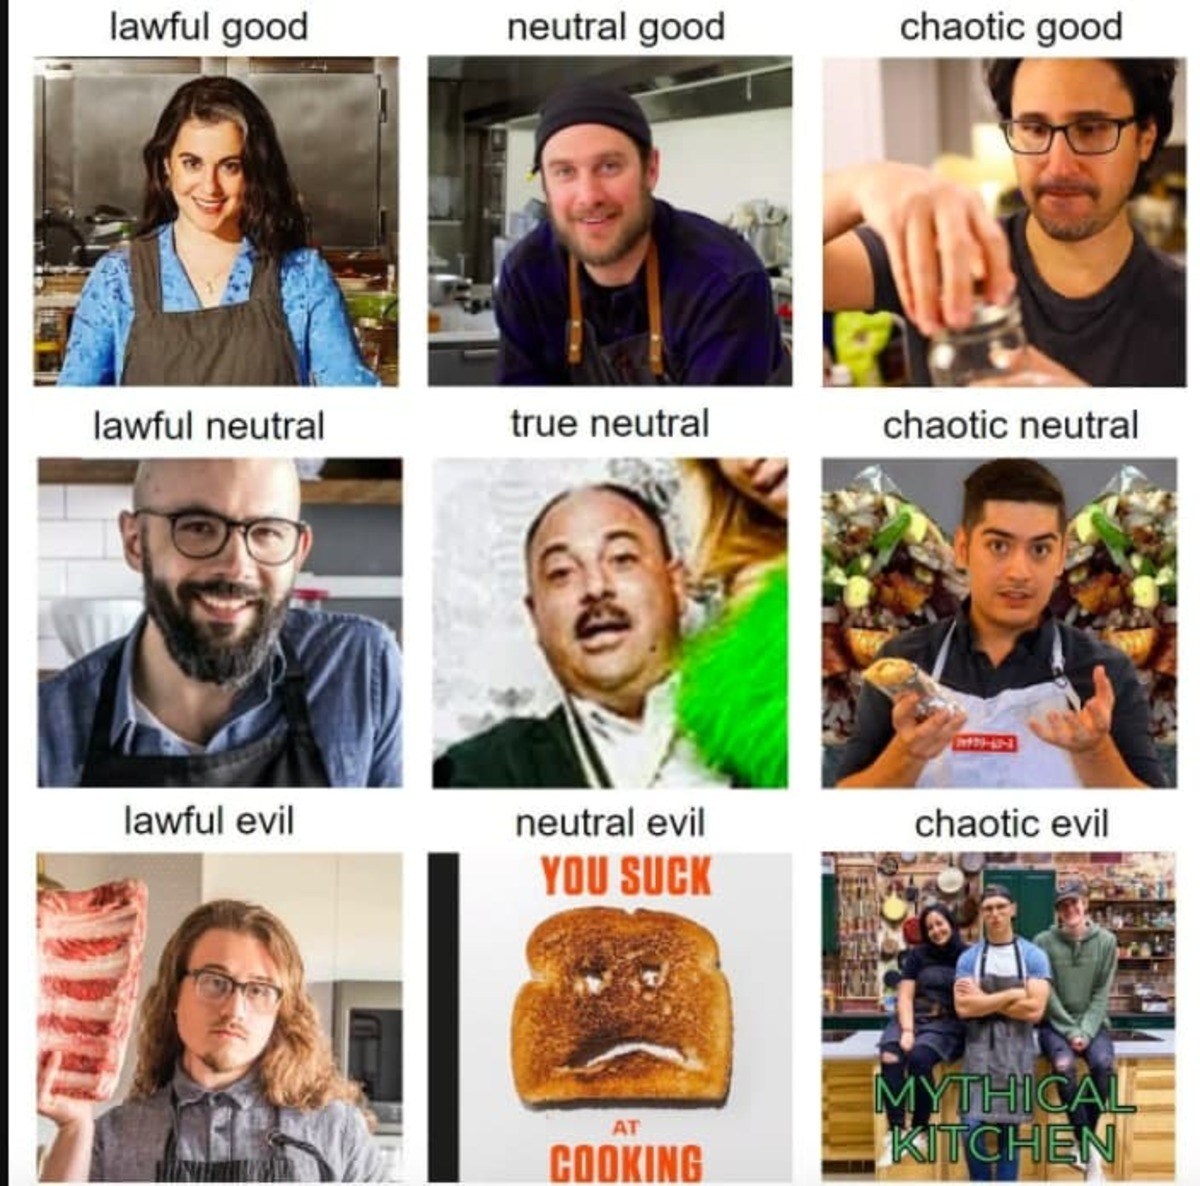 youtube cooking channel alignment chart. .. chaotic БЛЯДЬ